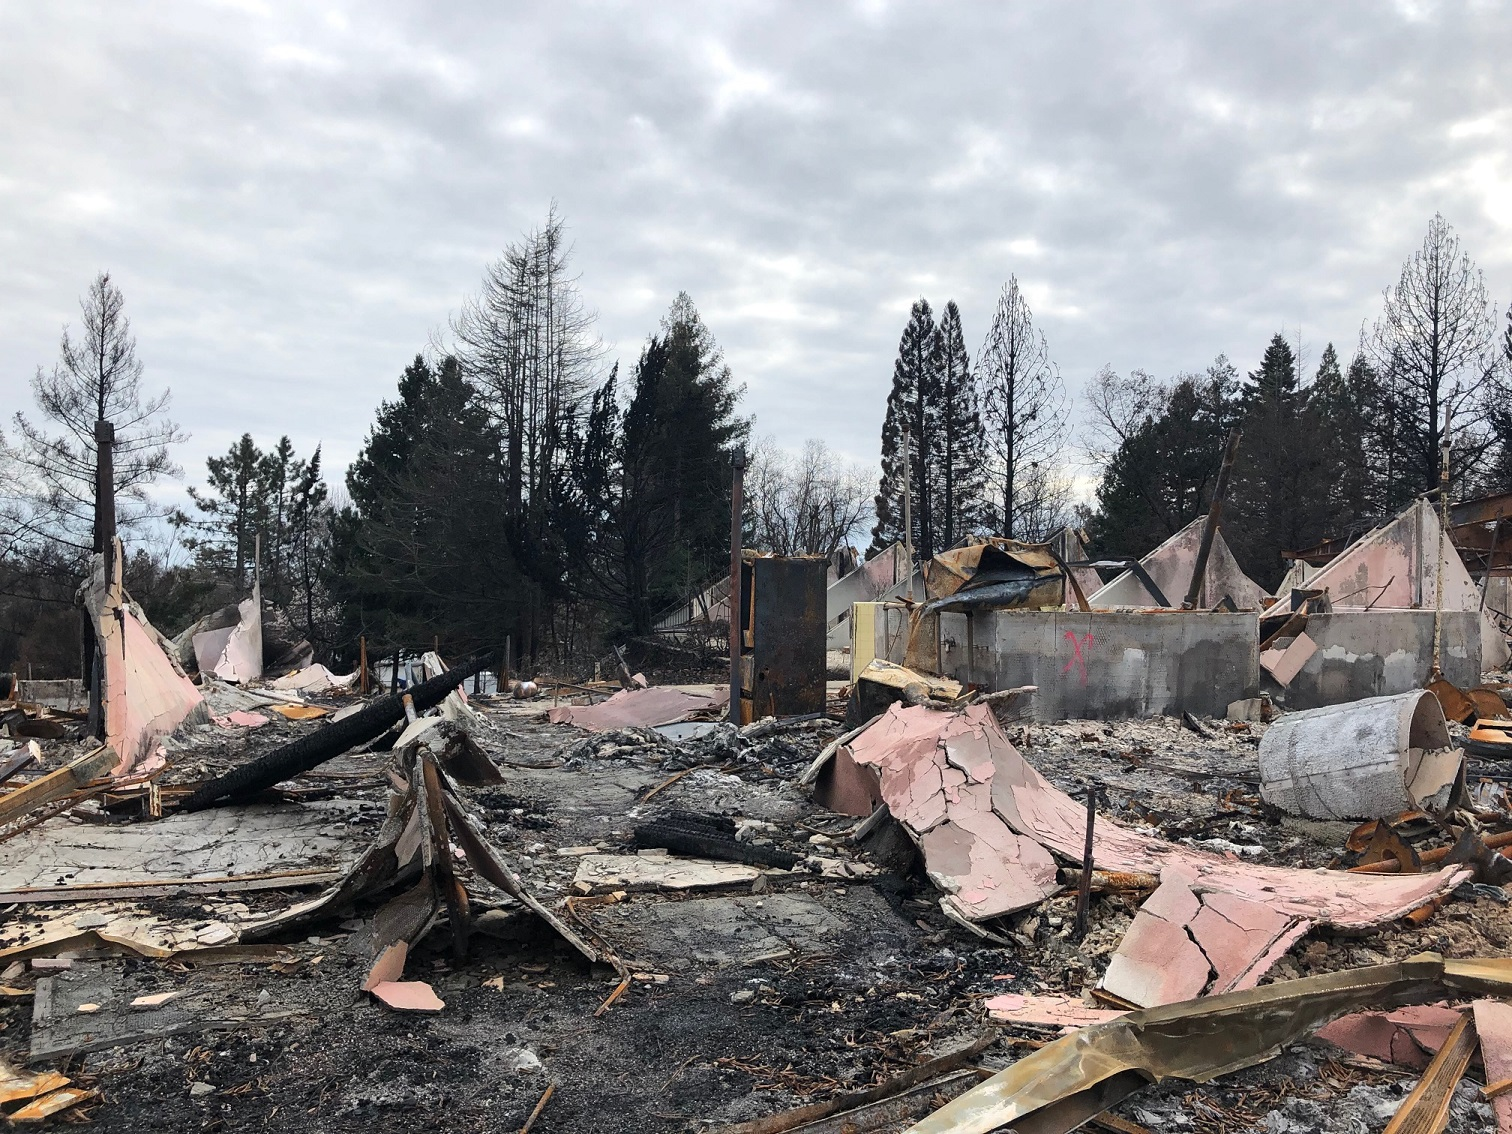 Post-Camp Fire devastation in Paradise, CA.